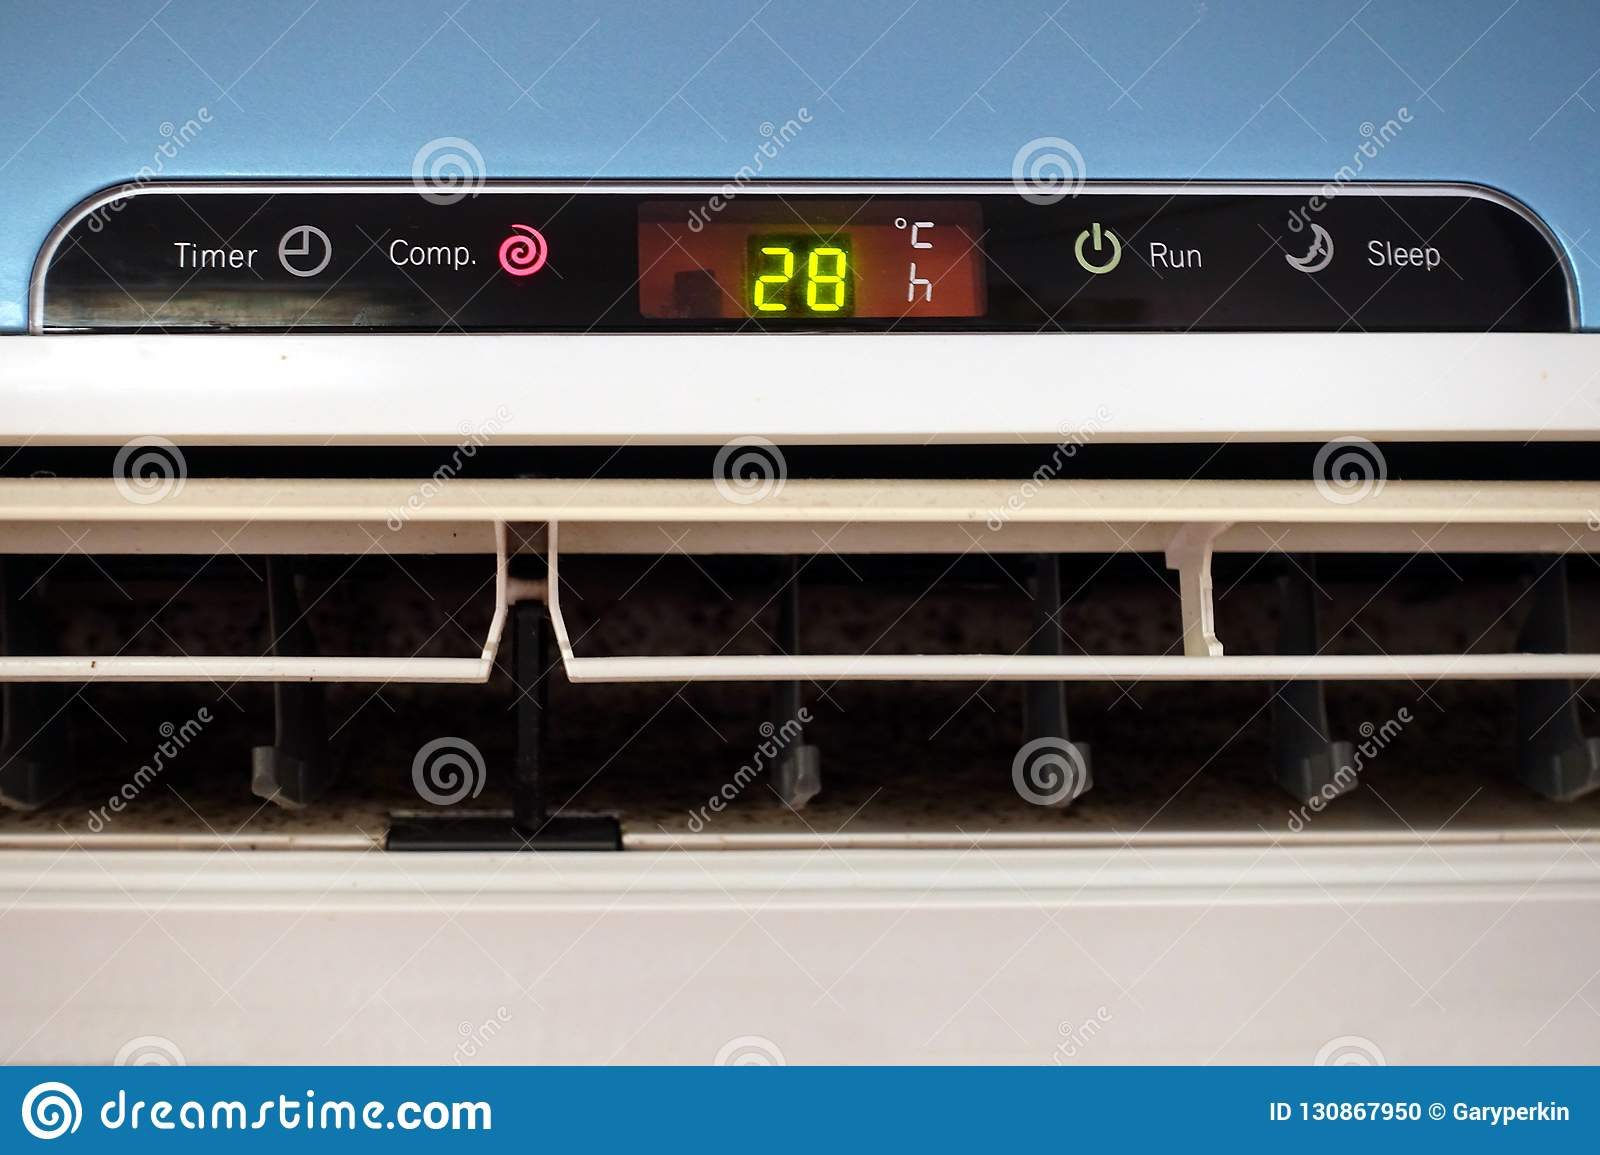 The Display Panel Of A Domestic Ac Or Air Conditioning Unit Showing A Temperature Of 28 Degrees Celsius Stock Photo Image Of Consumption Indoor 130867950